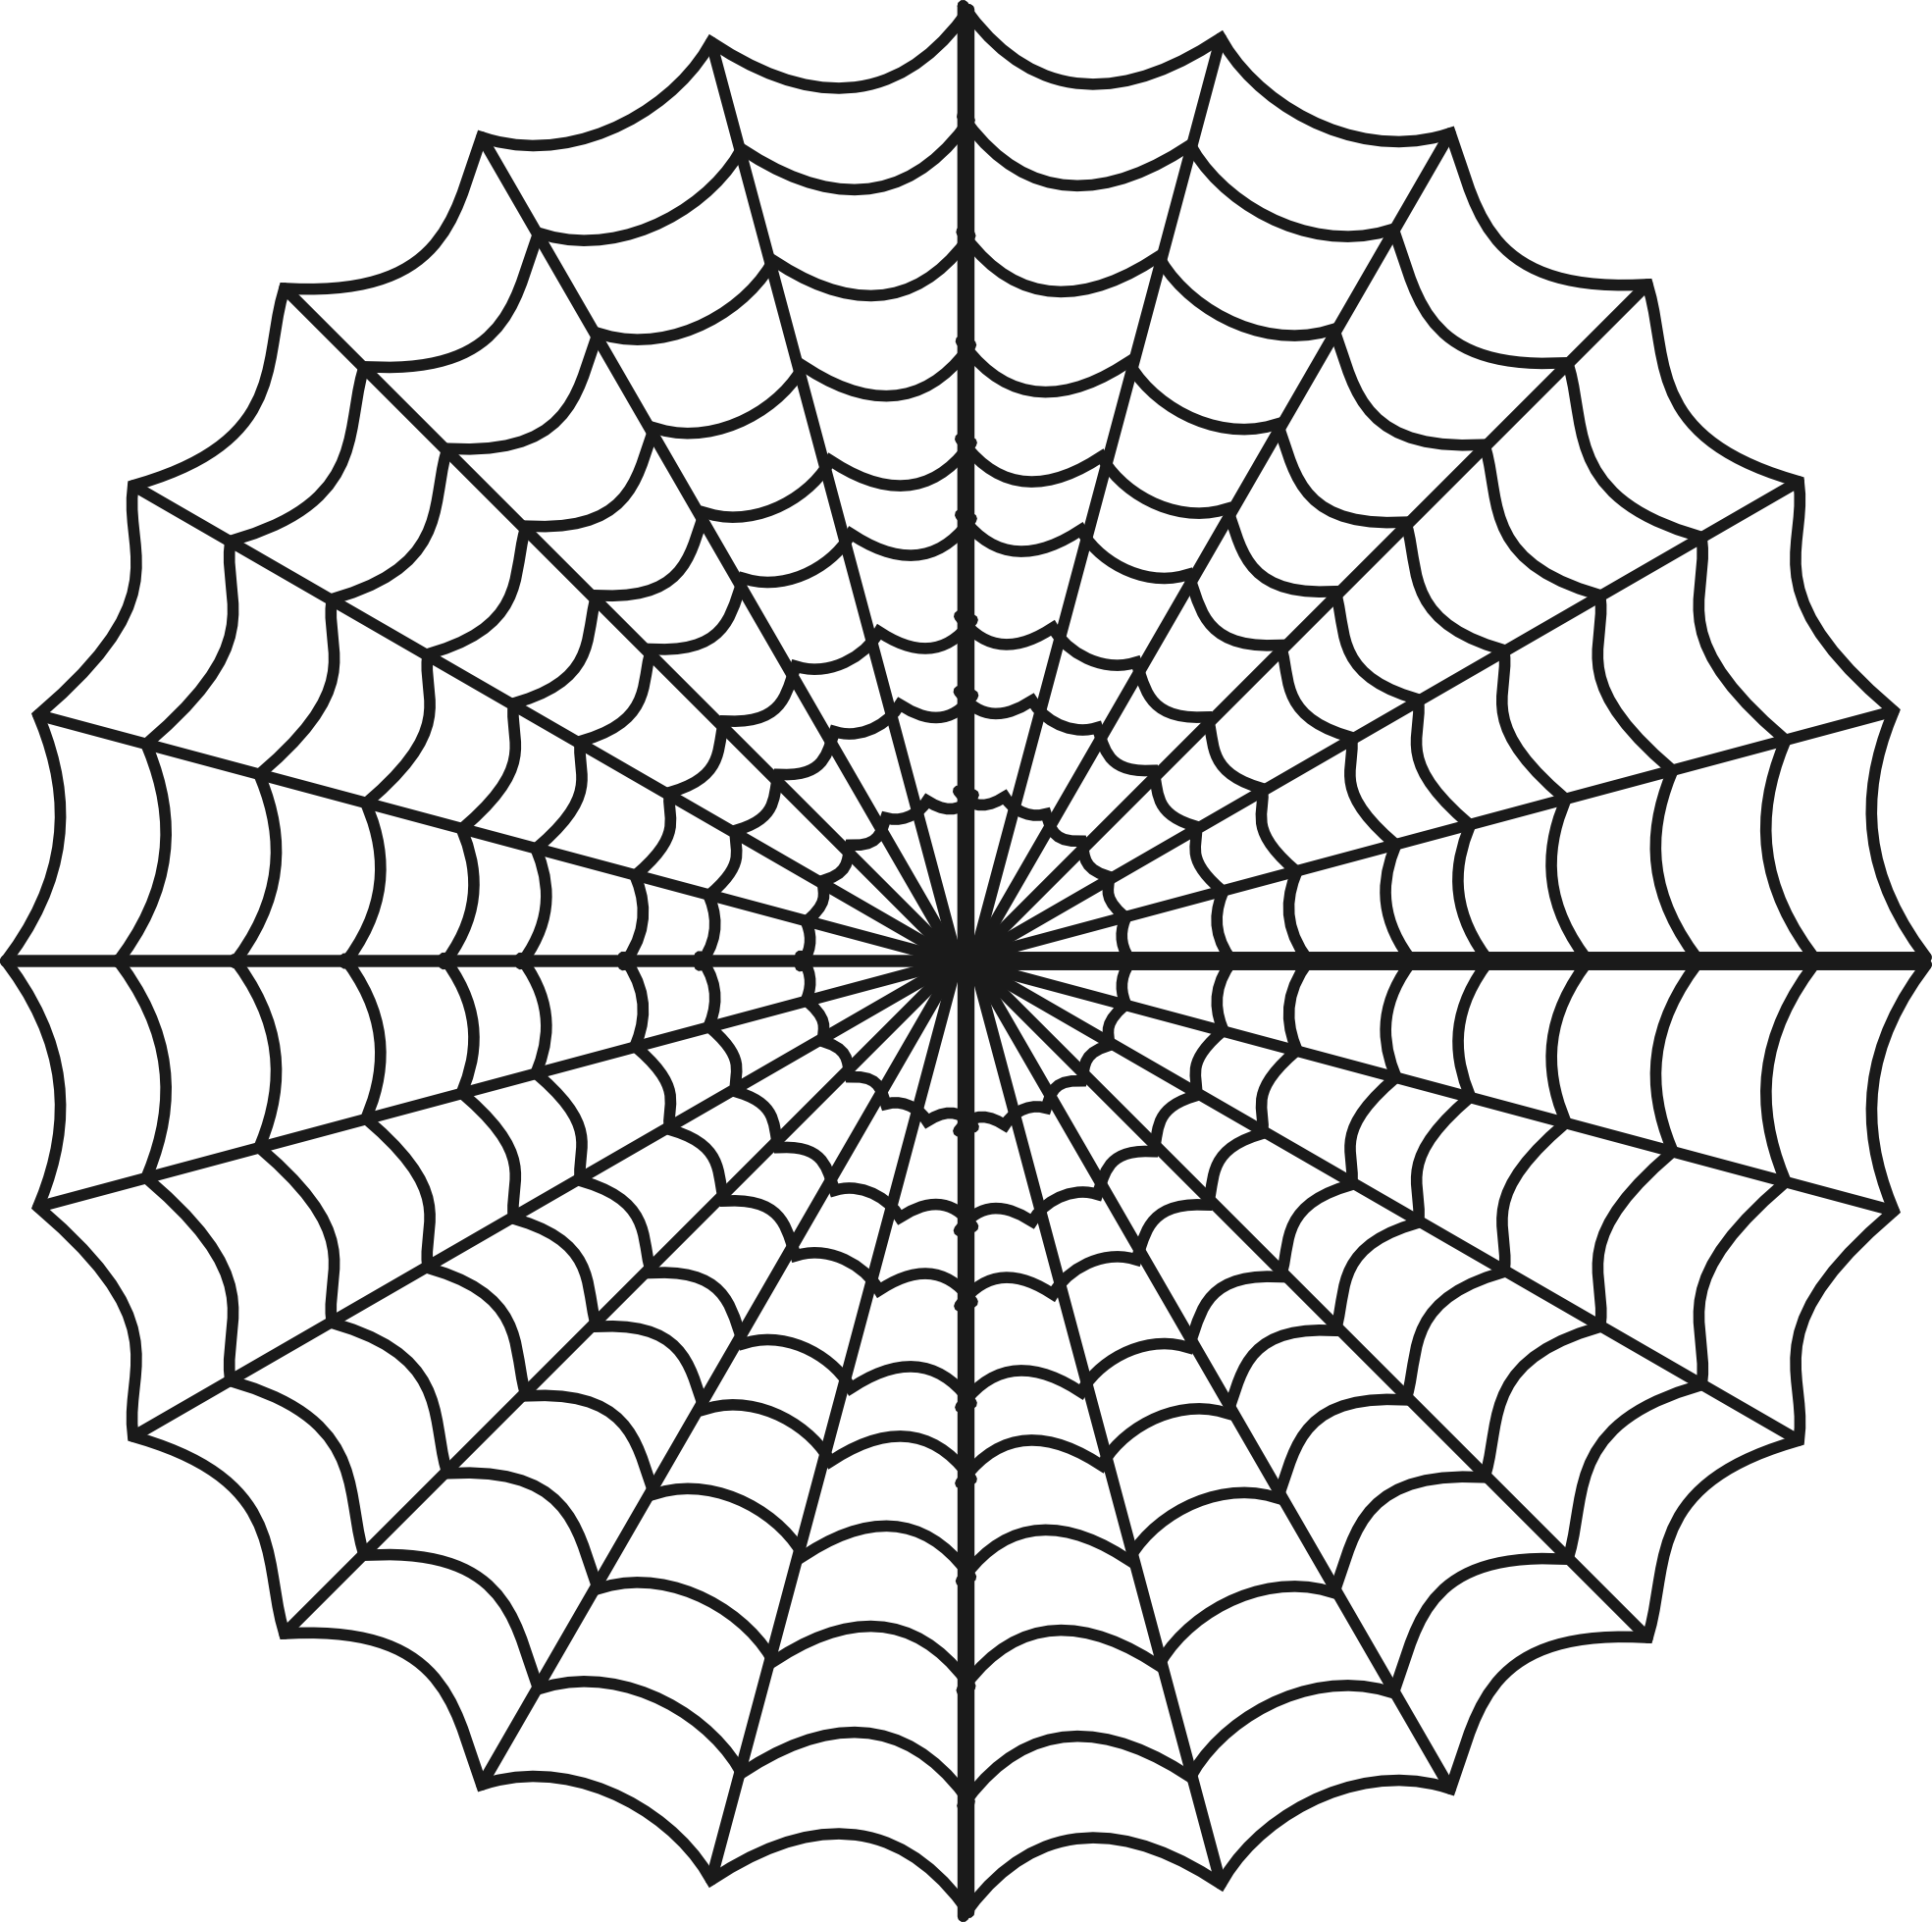 Background clipart spider web Images Web corner%20spider%20web%20clipart Clipart Clipart